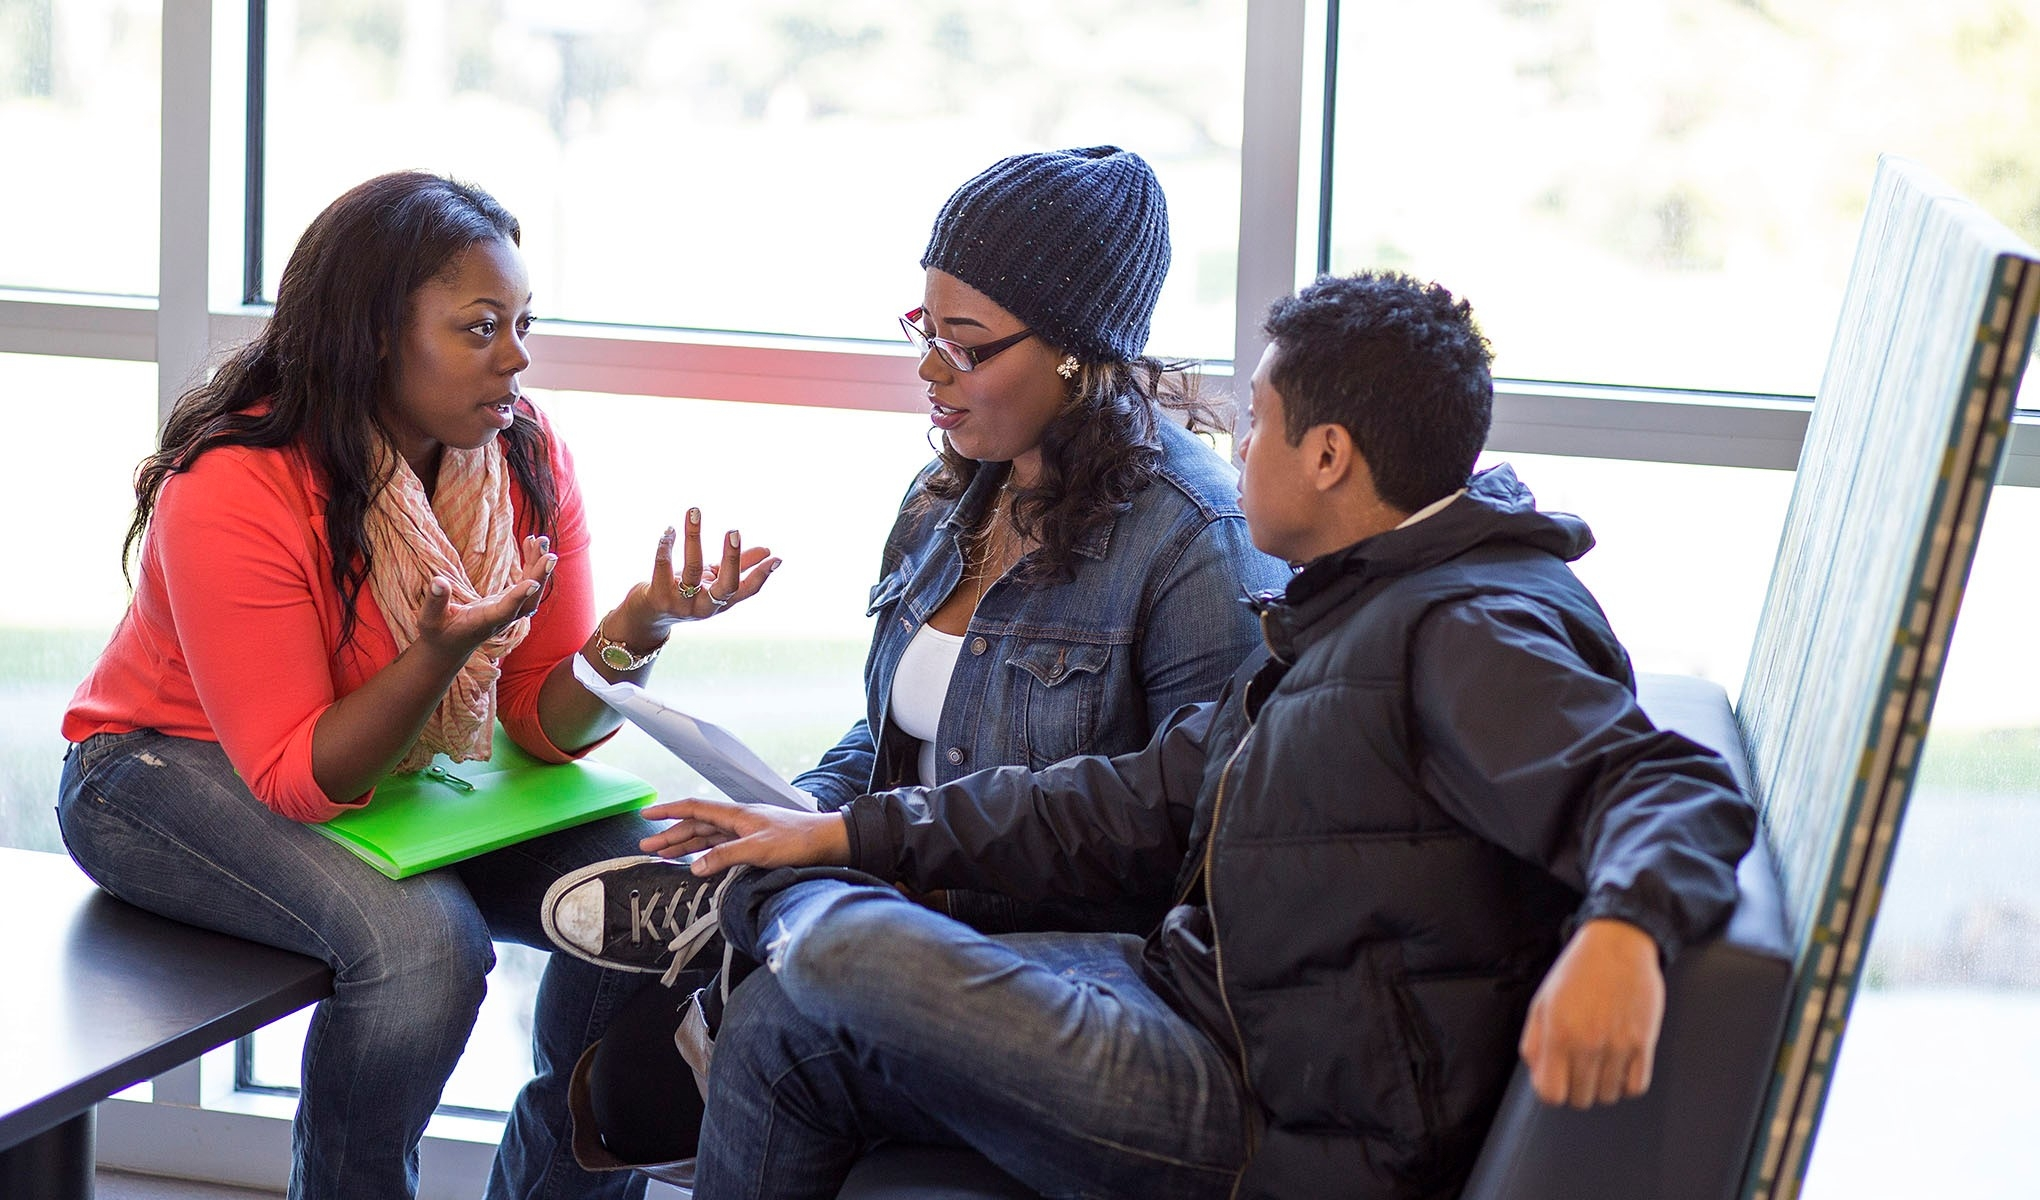 Metro student Kayla Jackson discusses a math problem with Metro students Ivanna Carroll and Henry Eik.